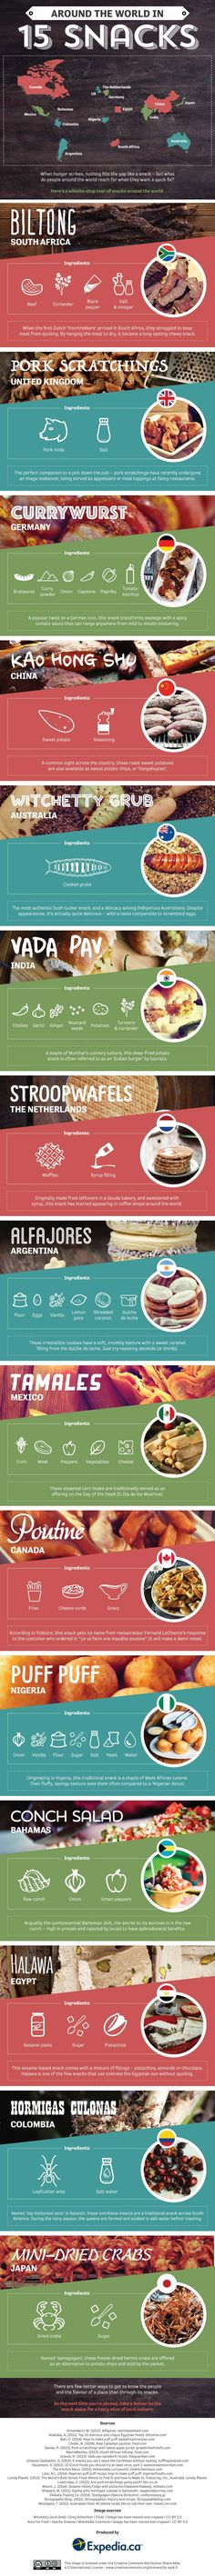 Around the World in 15 Snacks #infographic #infografía